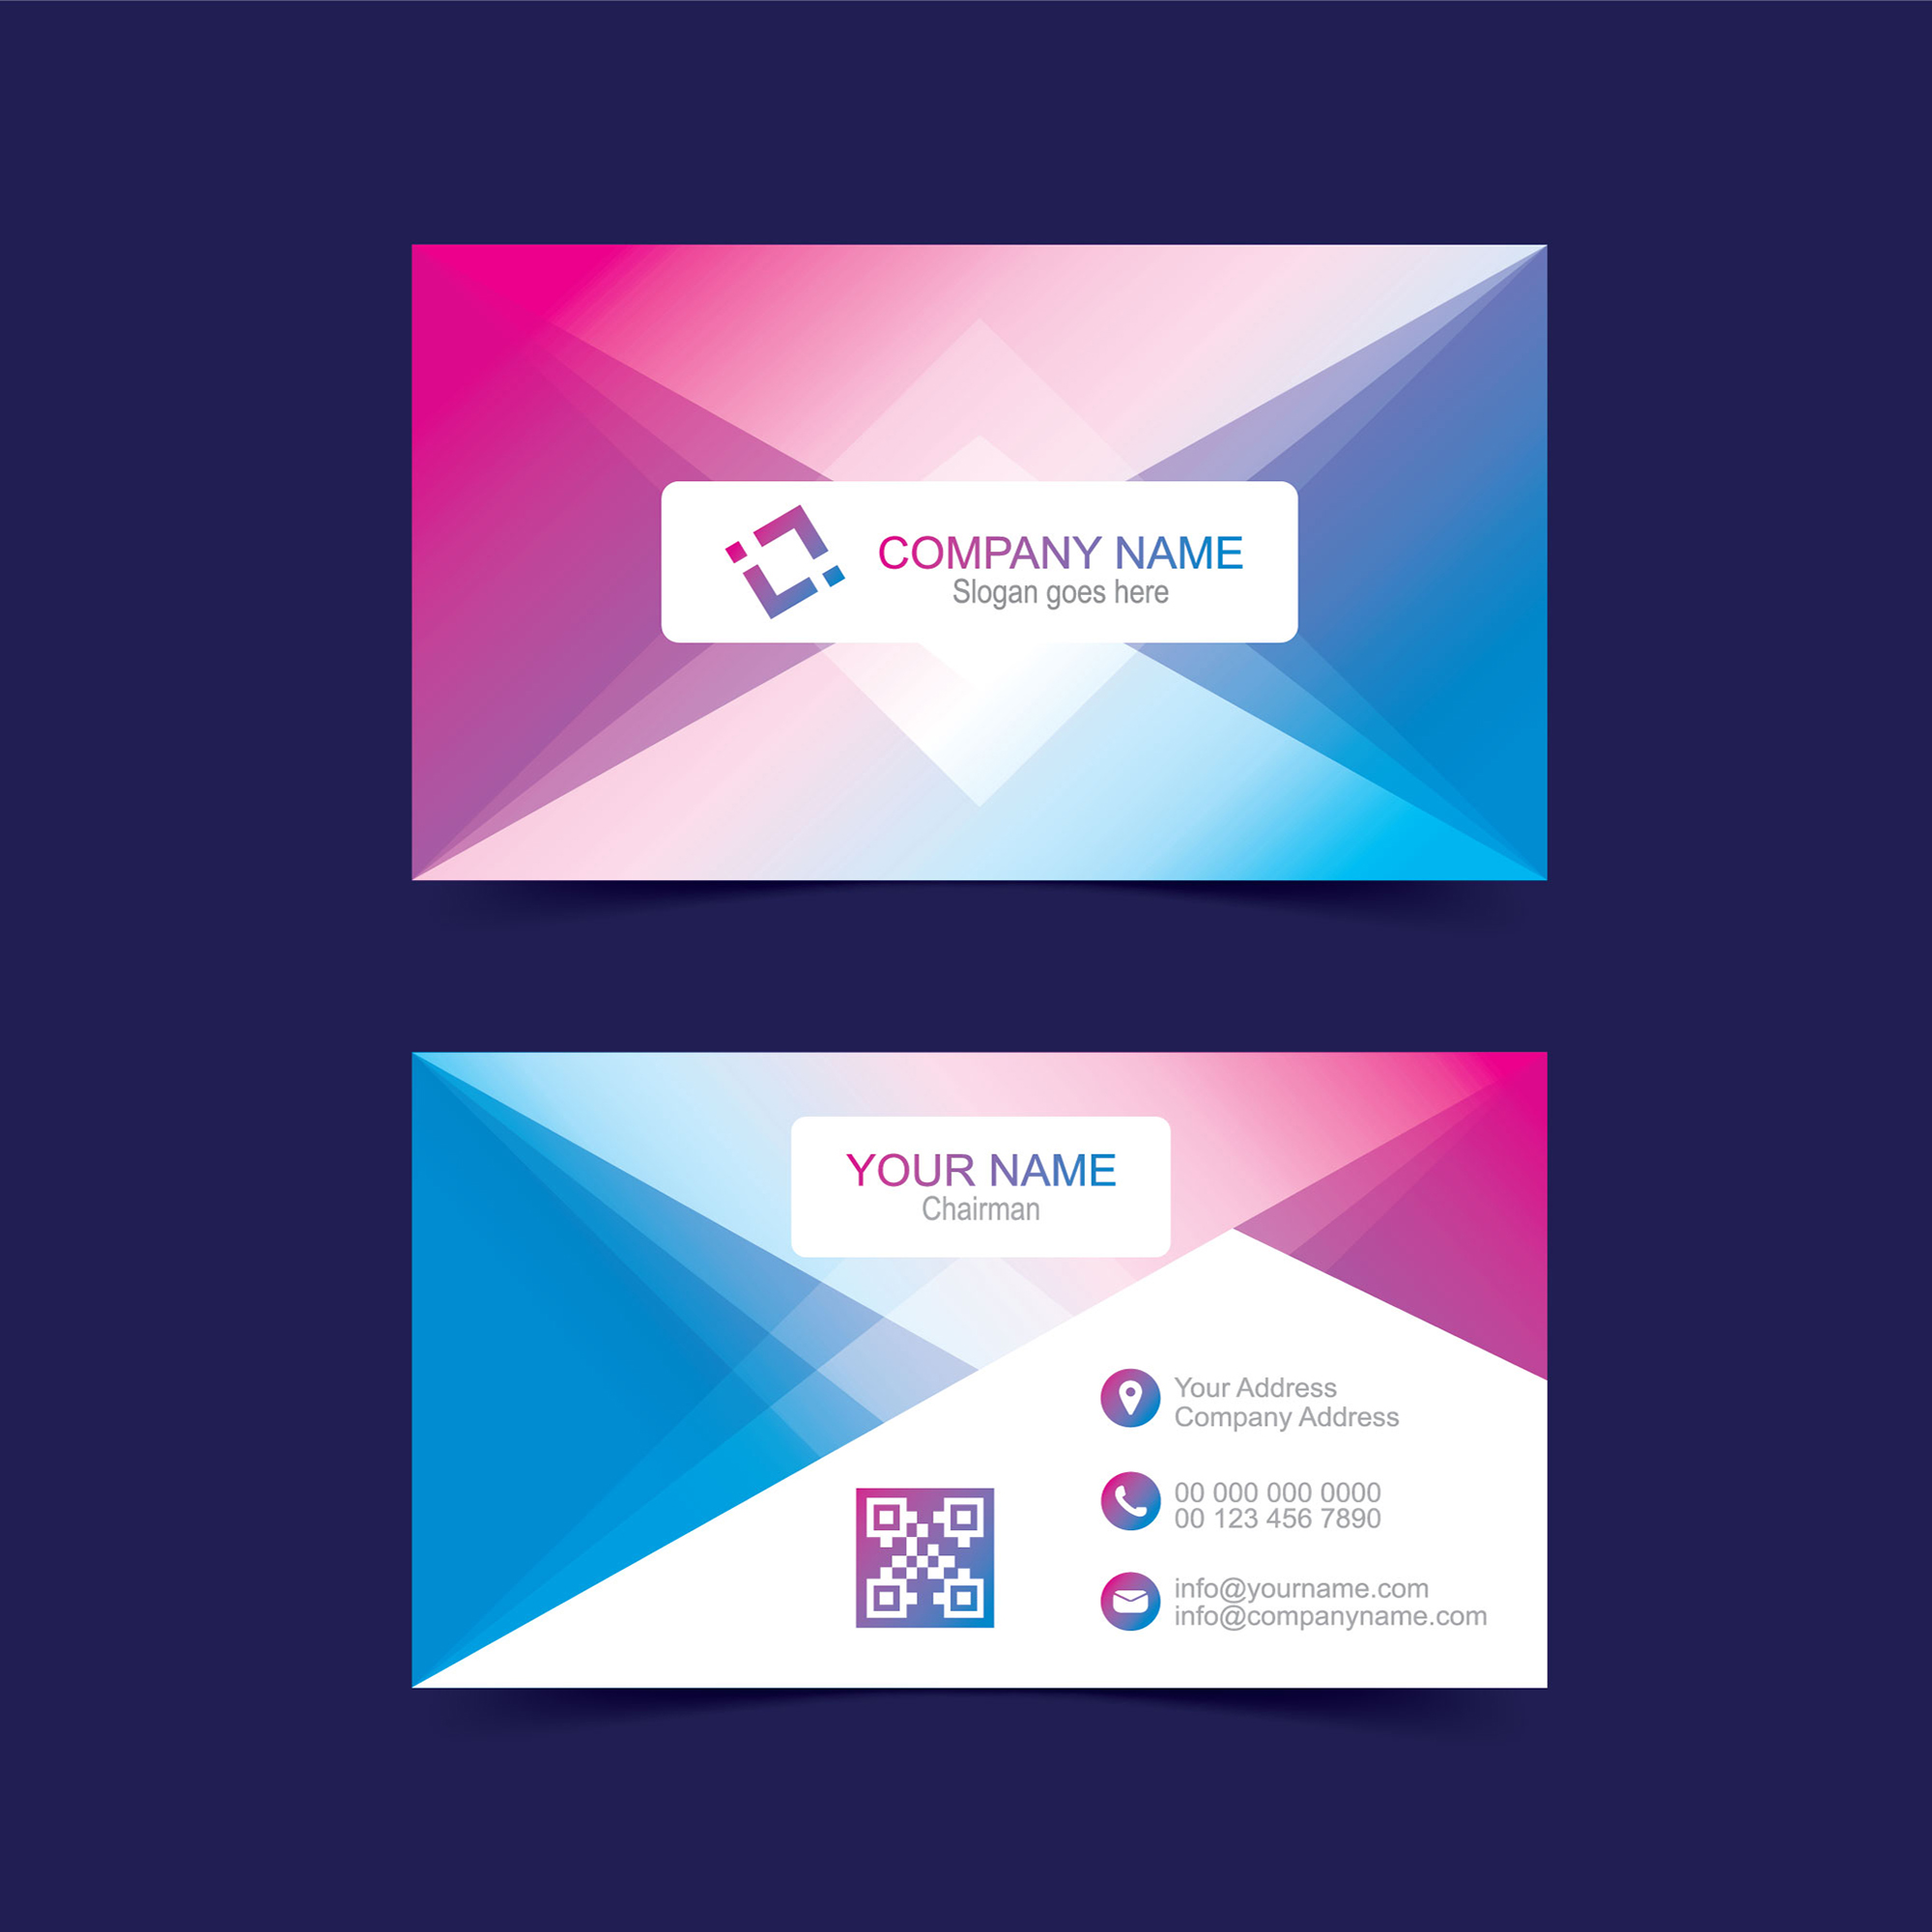 Business card template free download free vector wisxi business card business cards business card design business card template design templates cheaphphosting